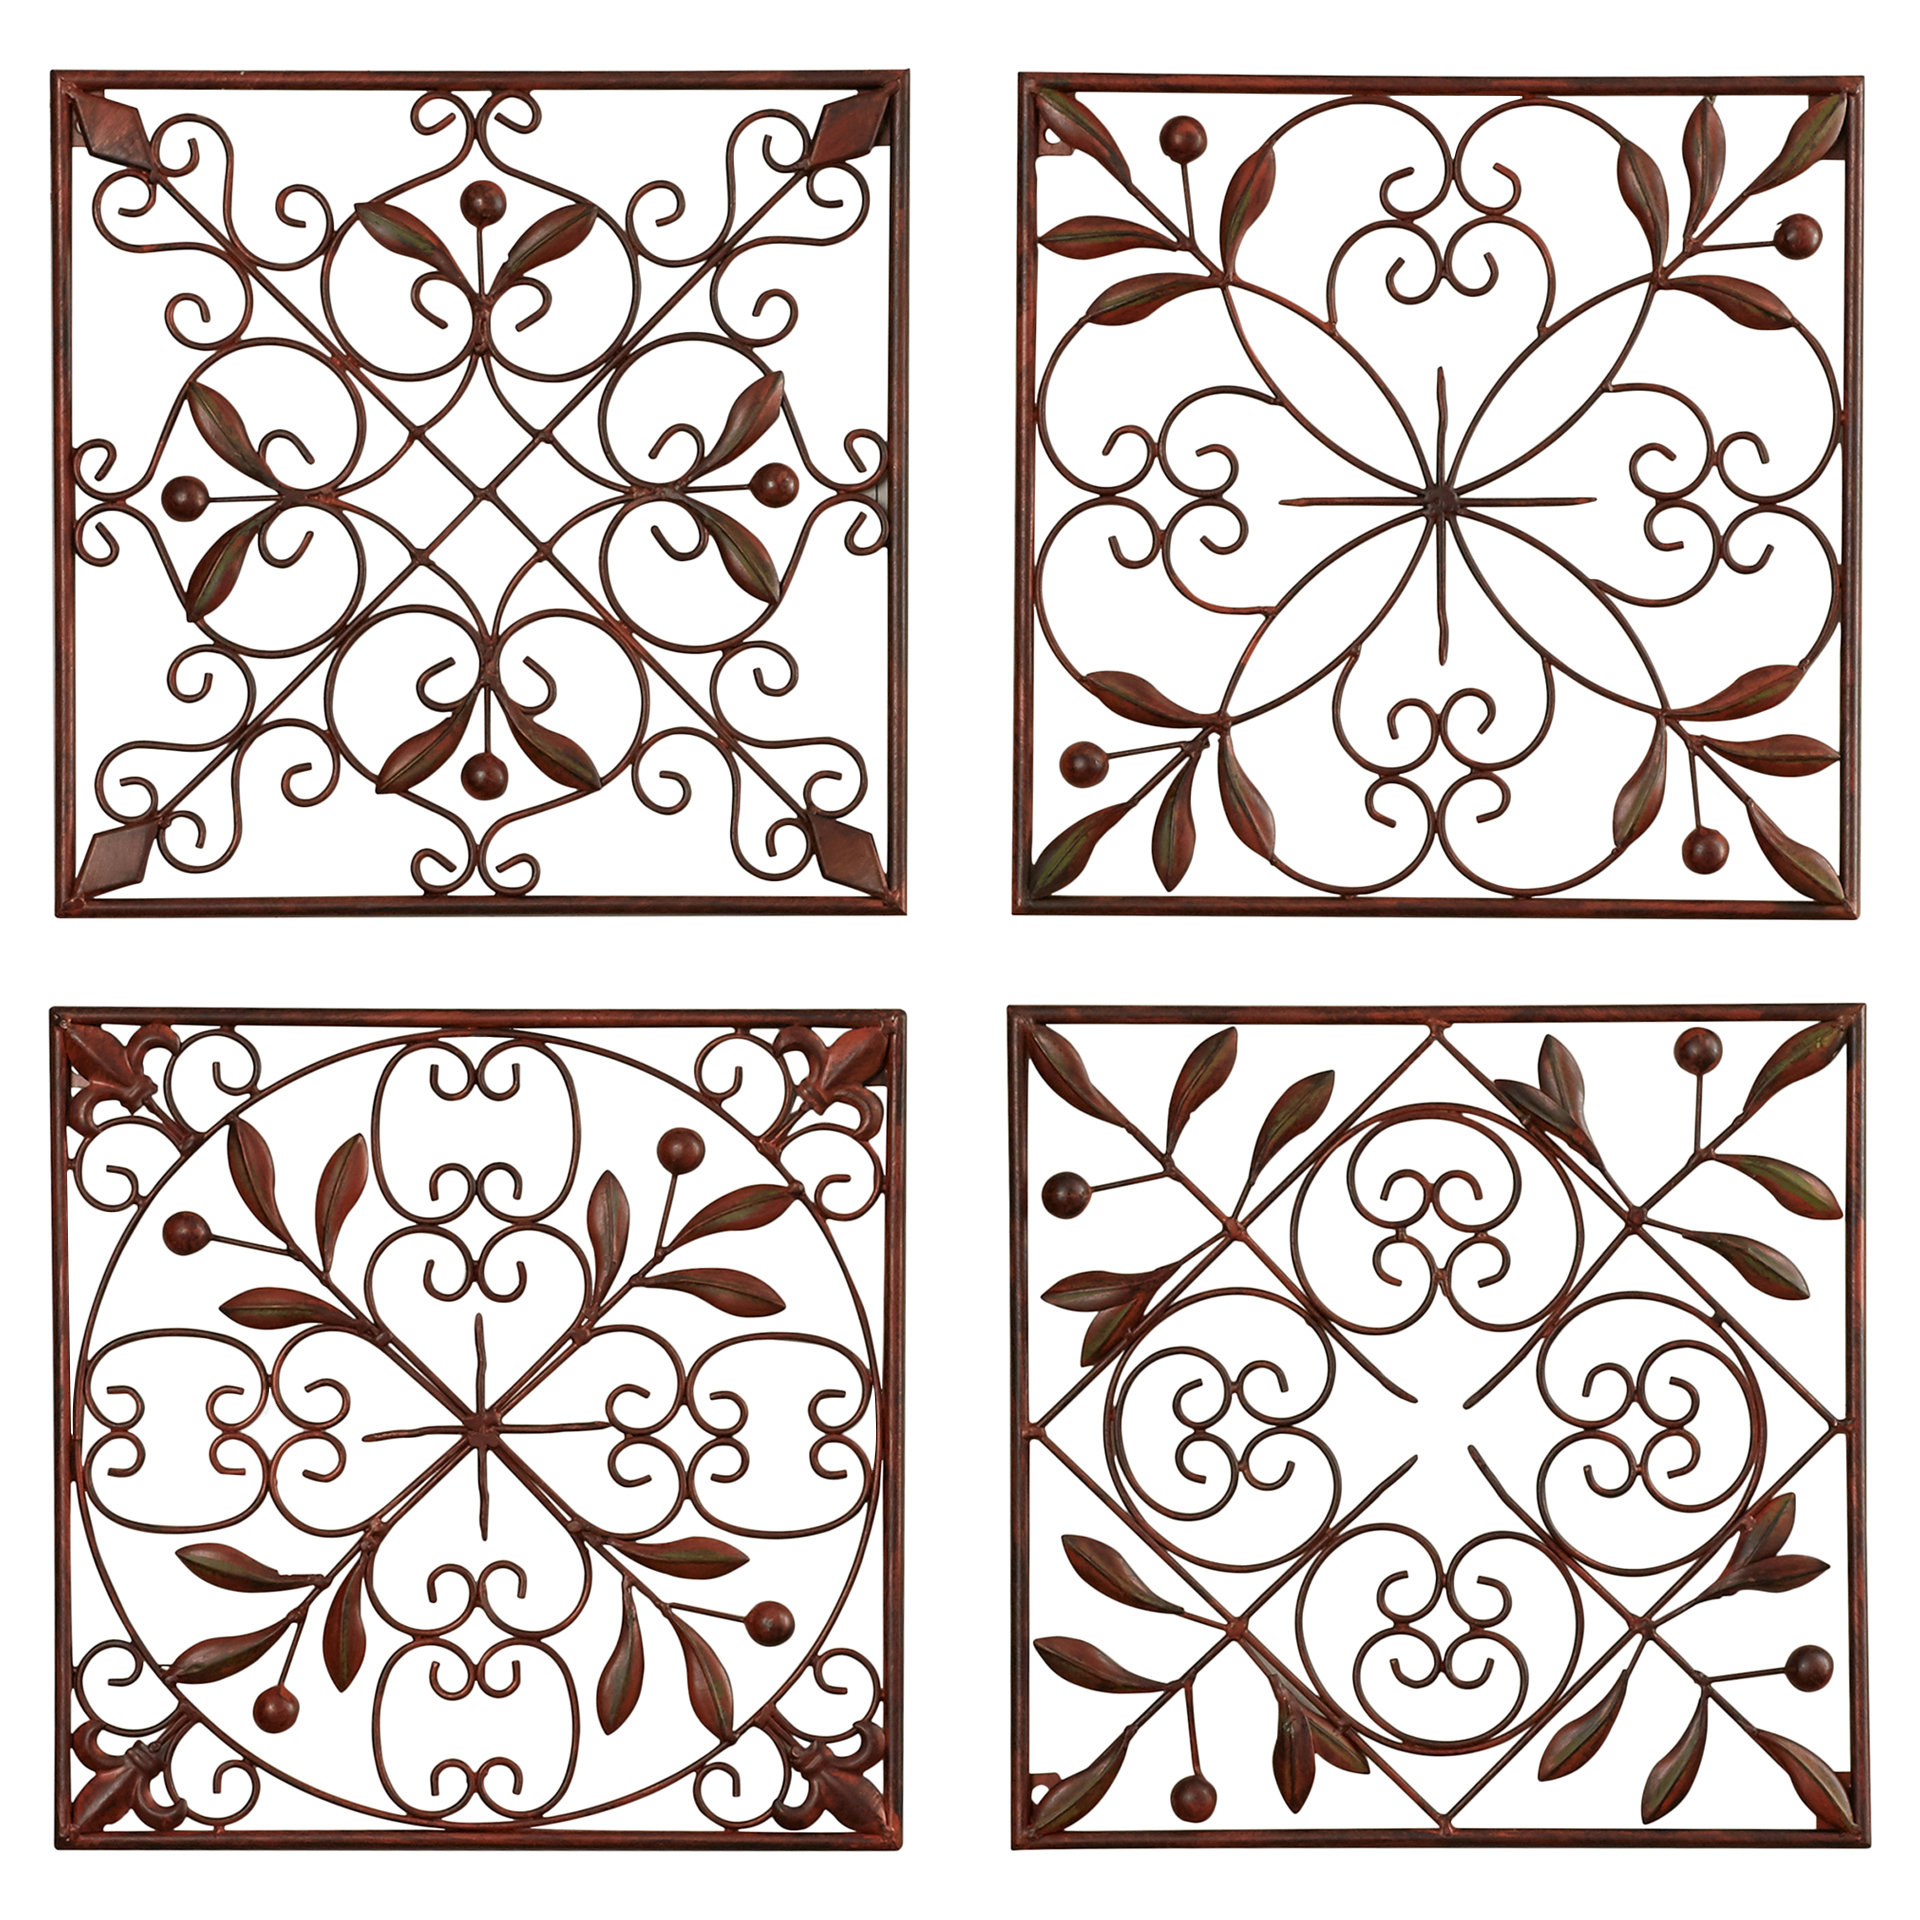 4 Piece Wall Décor Set Intended For 4 Piece Wall Decor Sets (View 22 of 30)